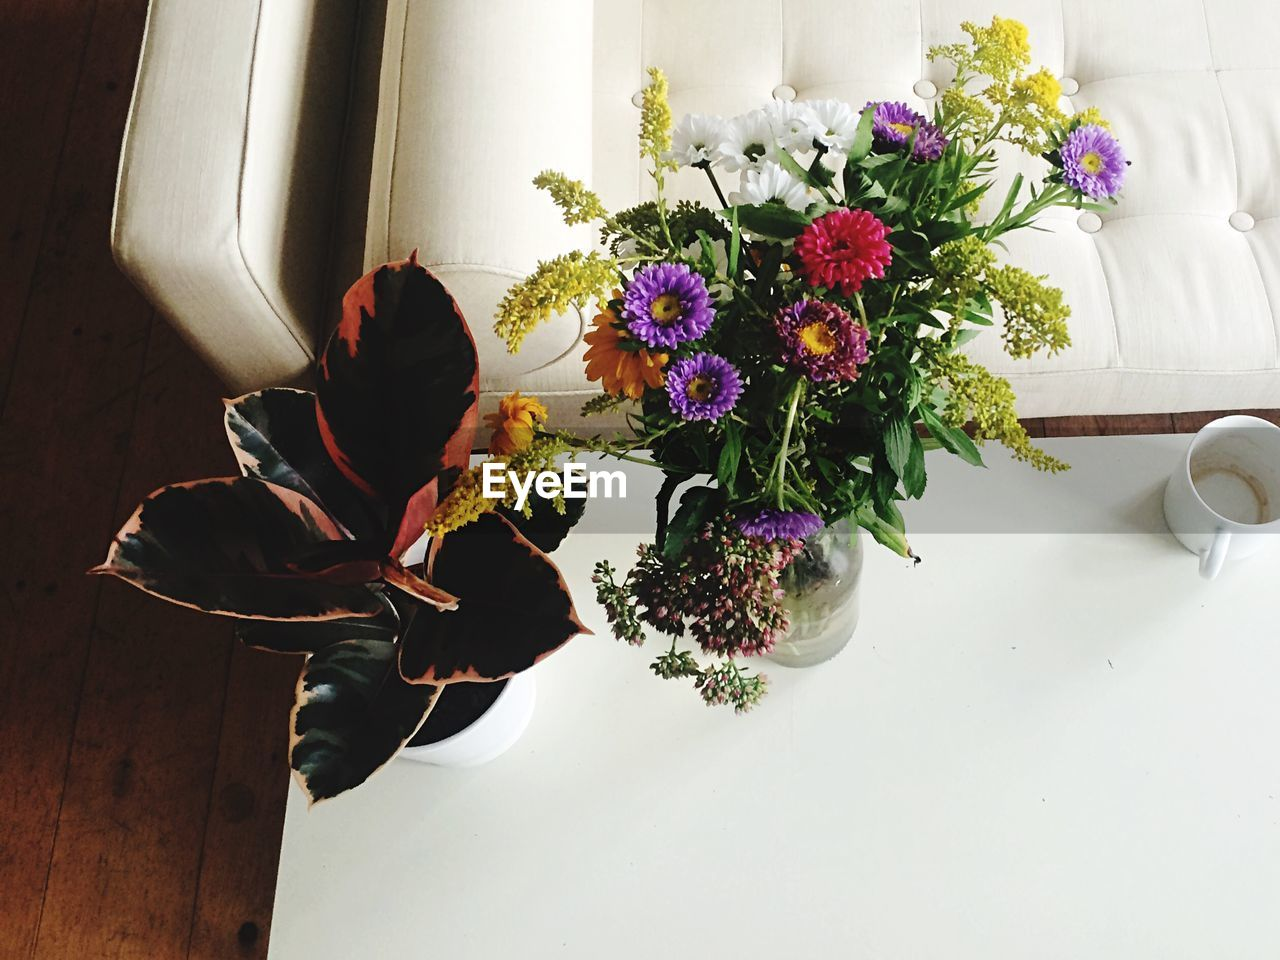 flower, vase, indoors, table, bouquet, freshness, nature, day, one person, people